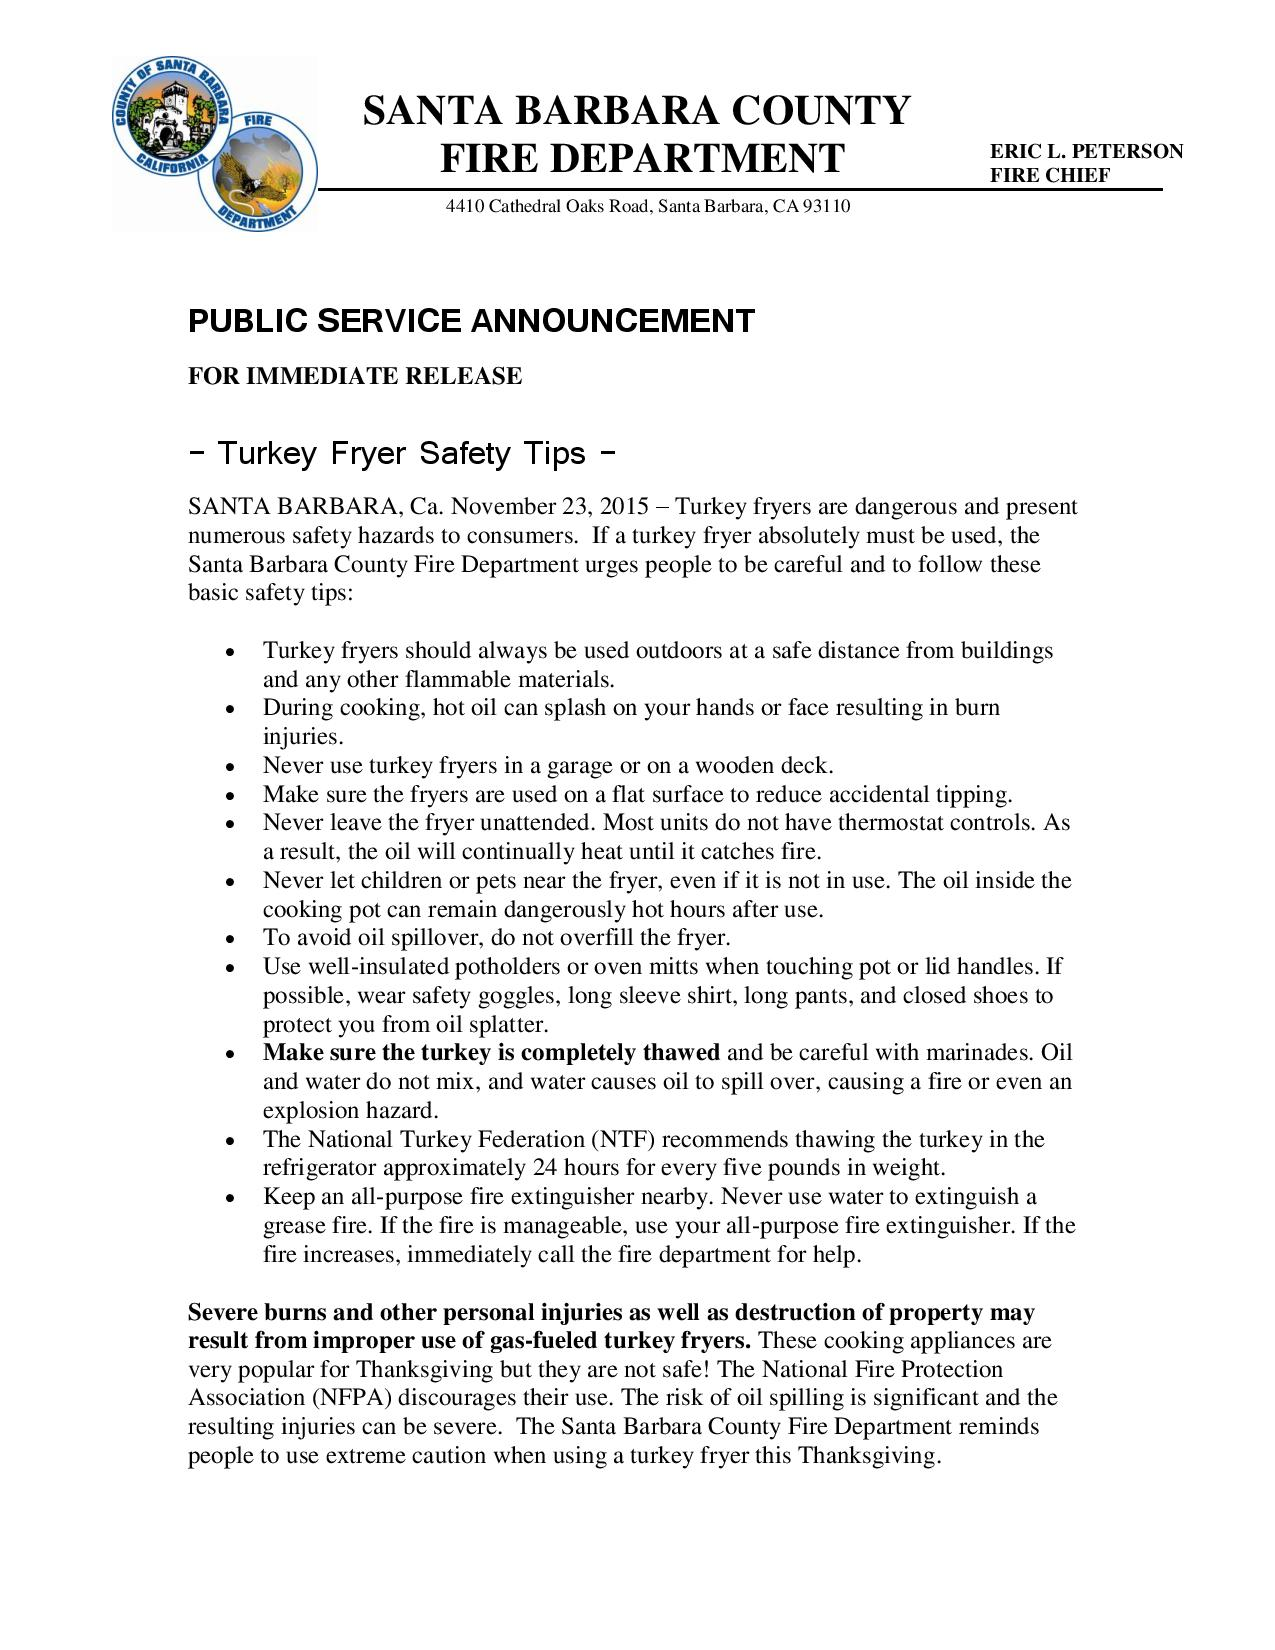 Turkey Fryer Safety Tips-pg1